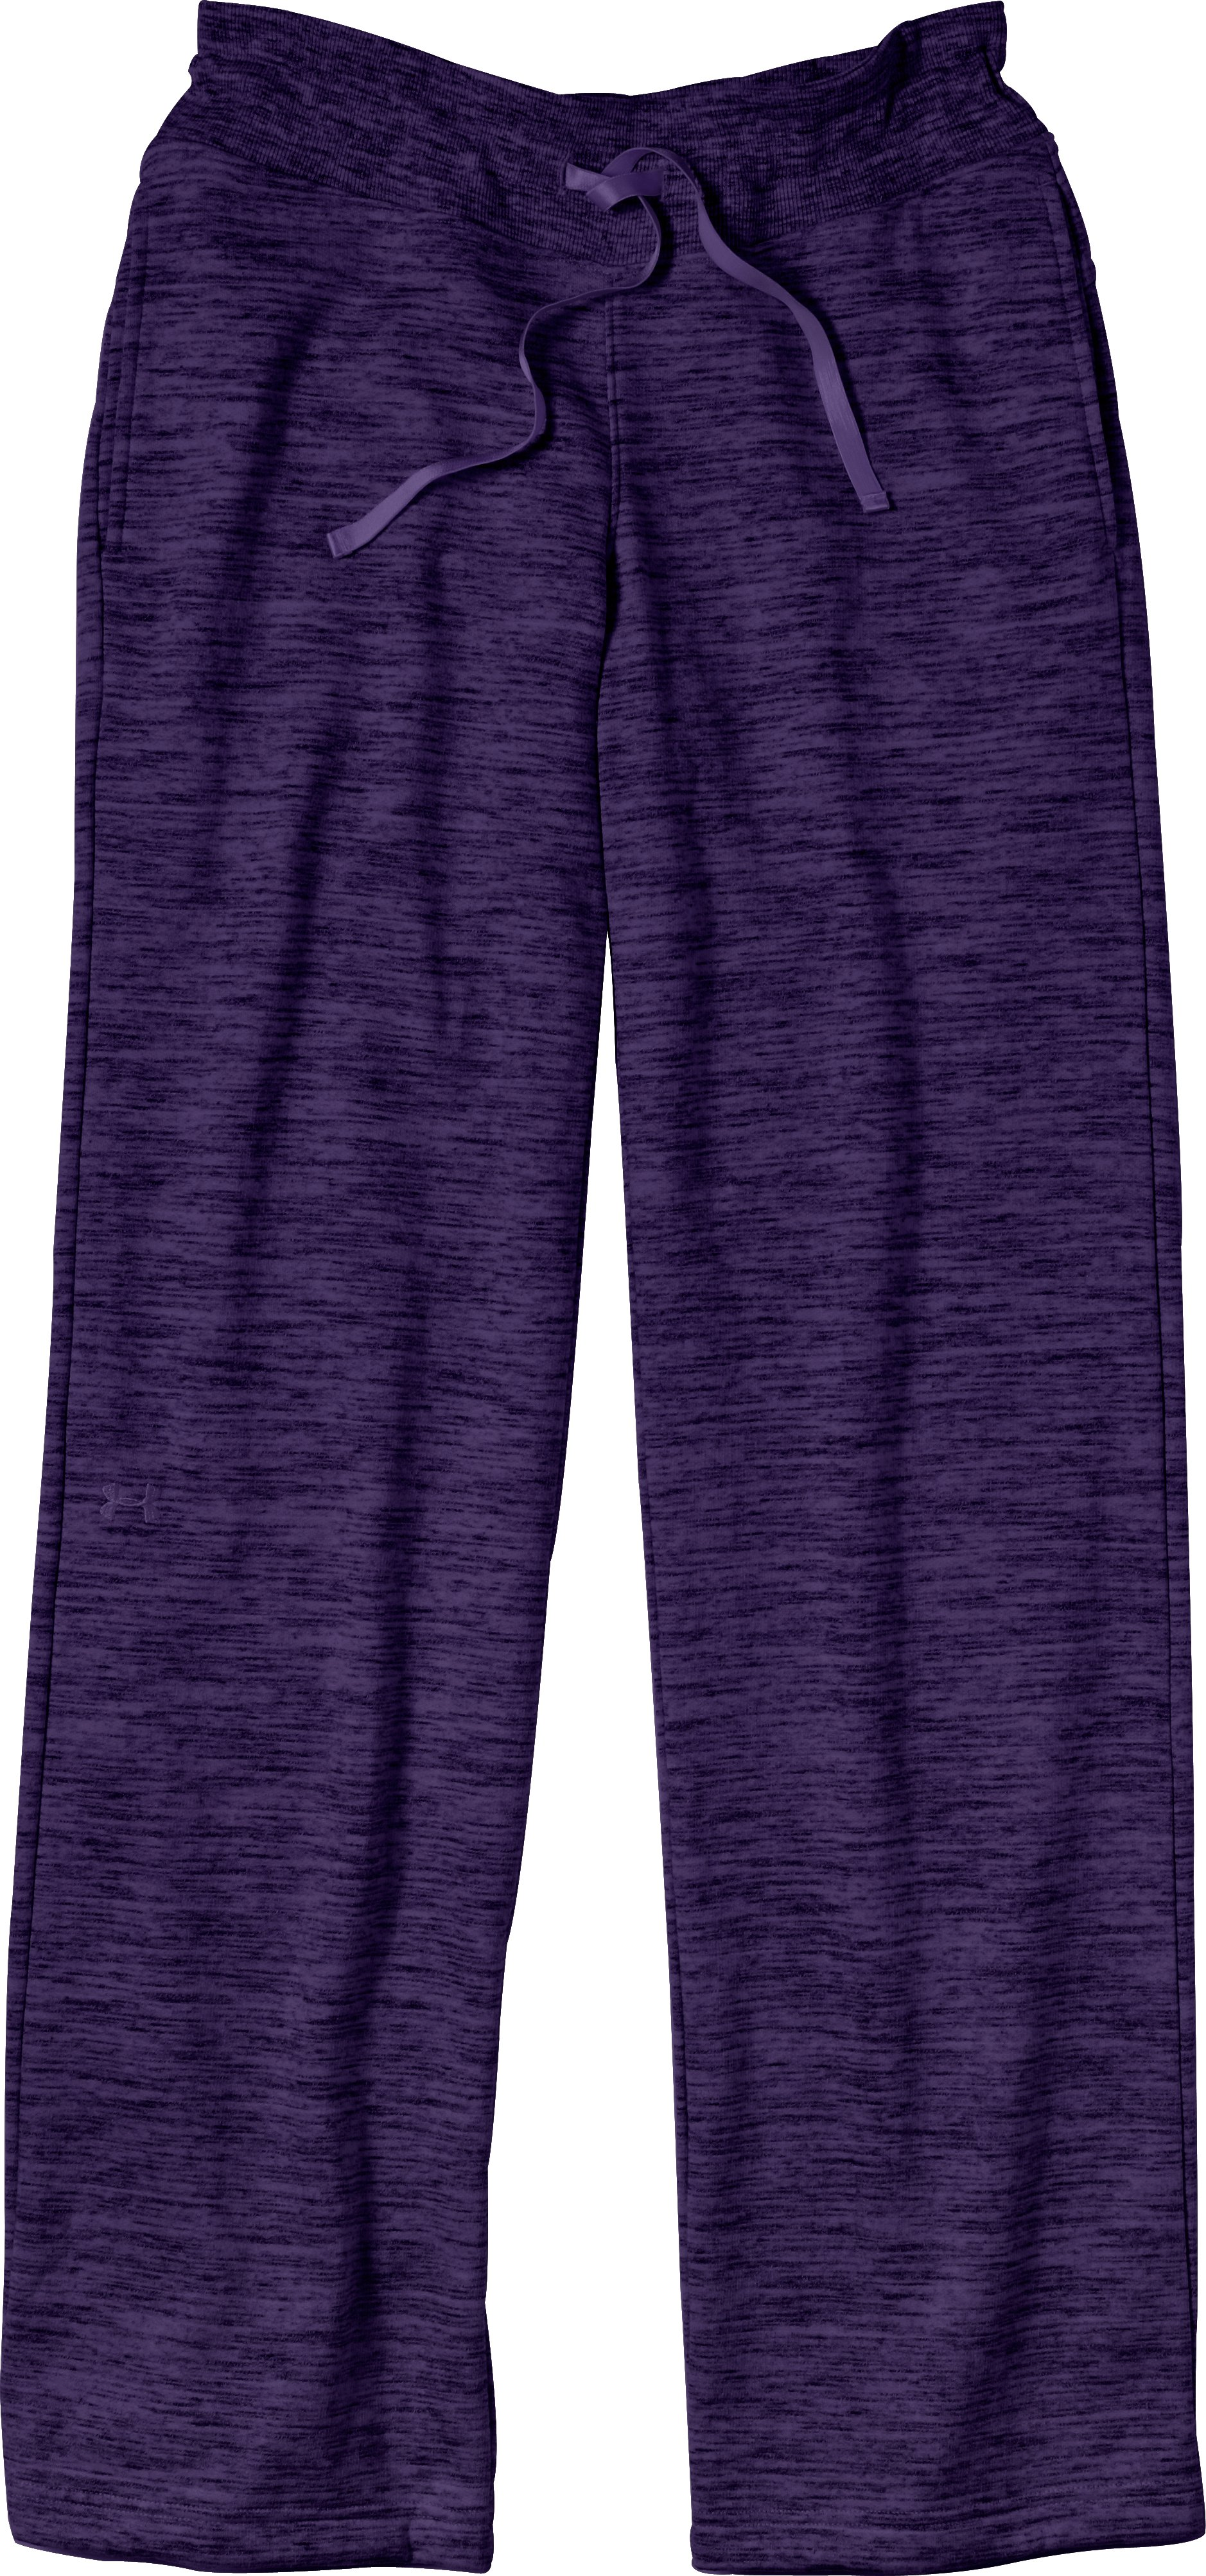 "Women's Charged Cotton® Storm Marble 32"" Pant, Purple Rain, Laydown"